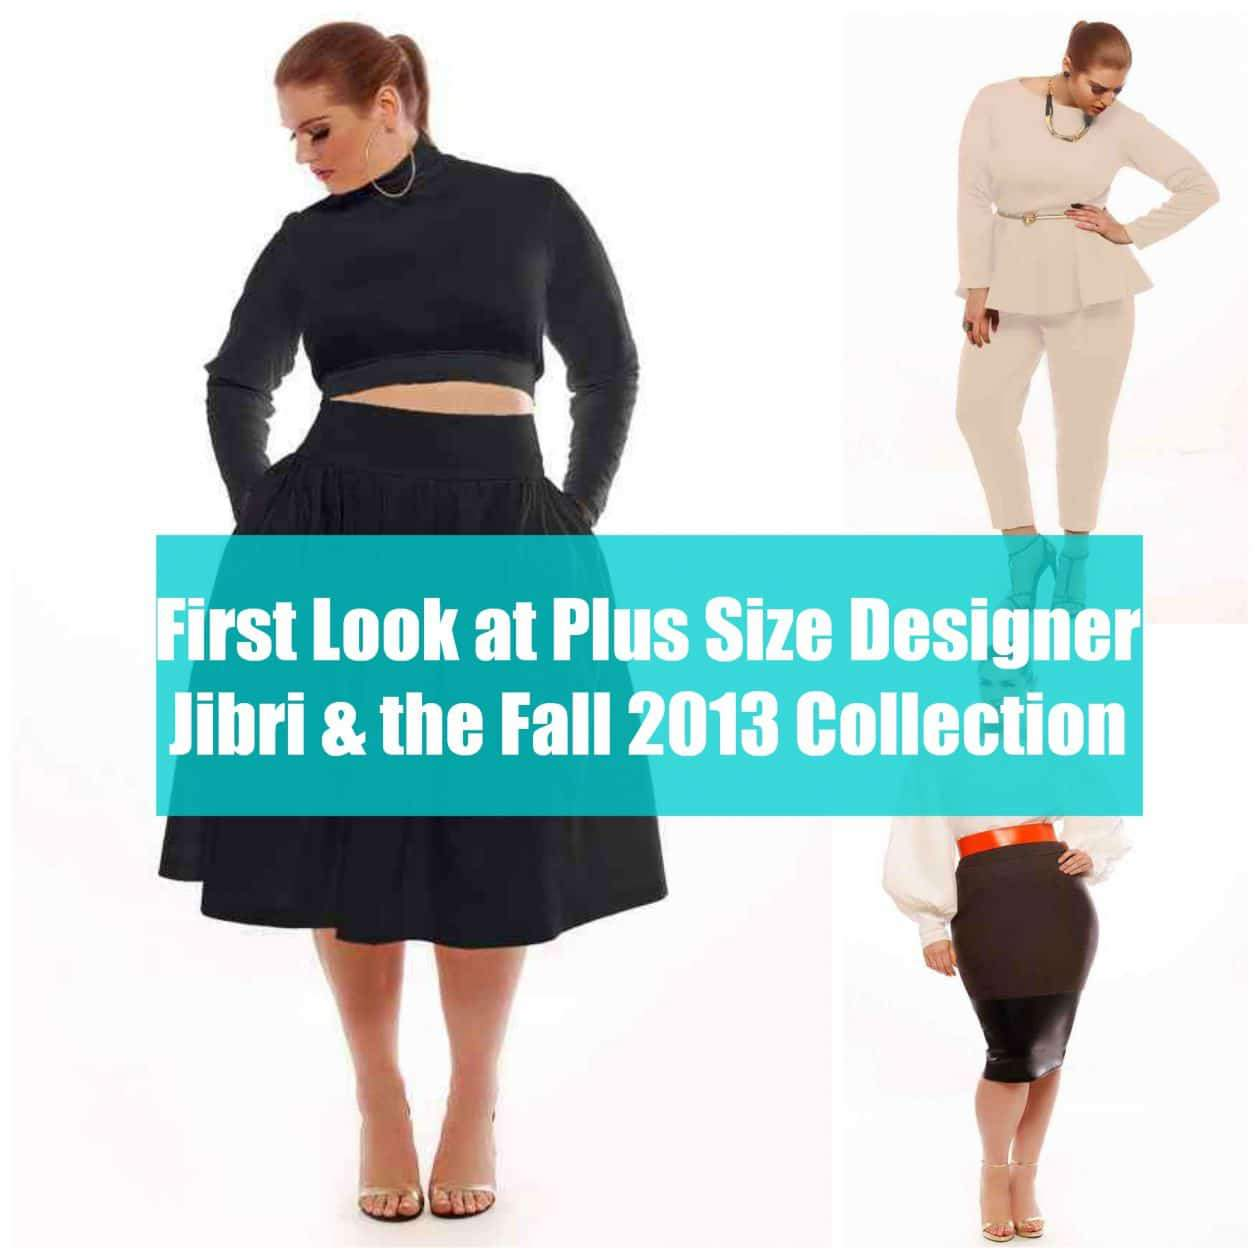 First Look at Plus Size Designer Jibri, the Fall 2013 Collection